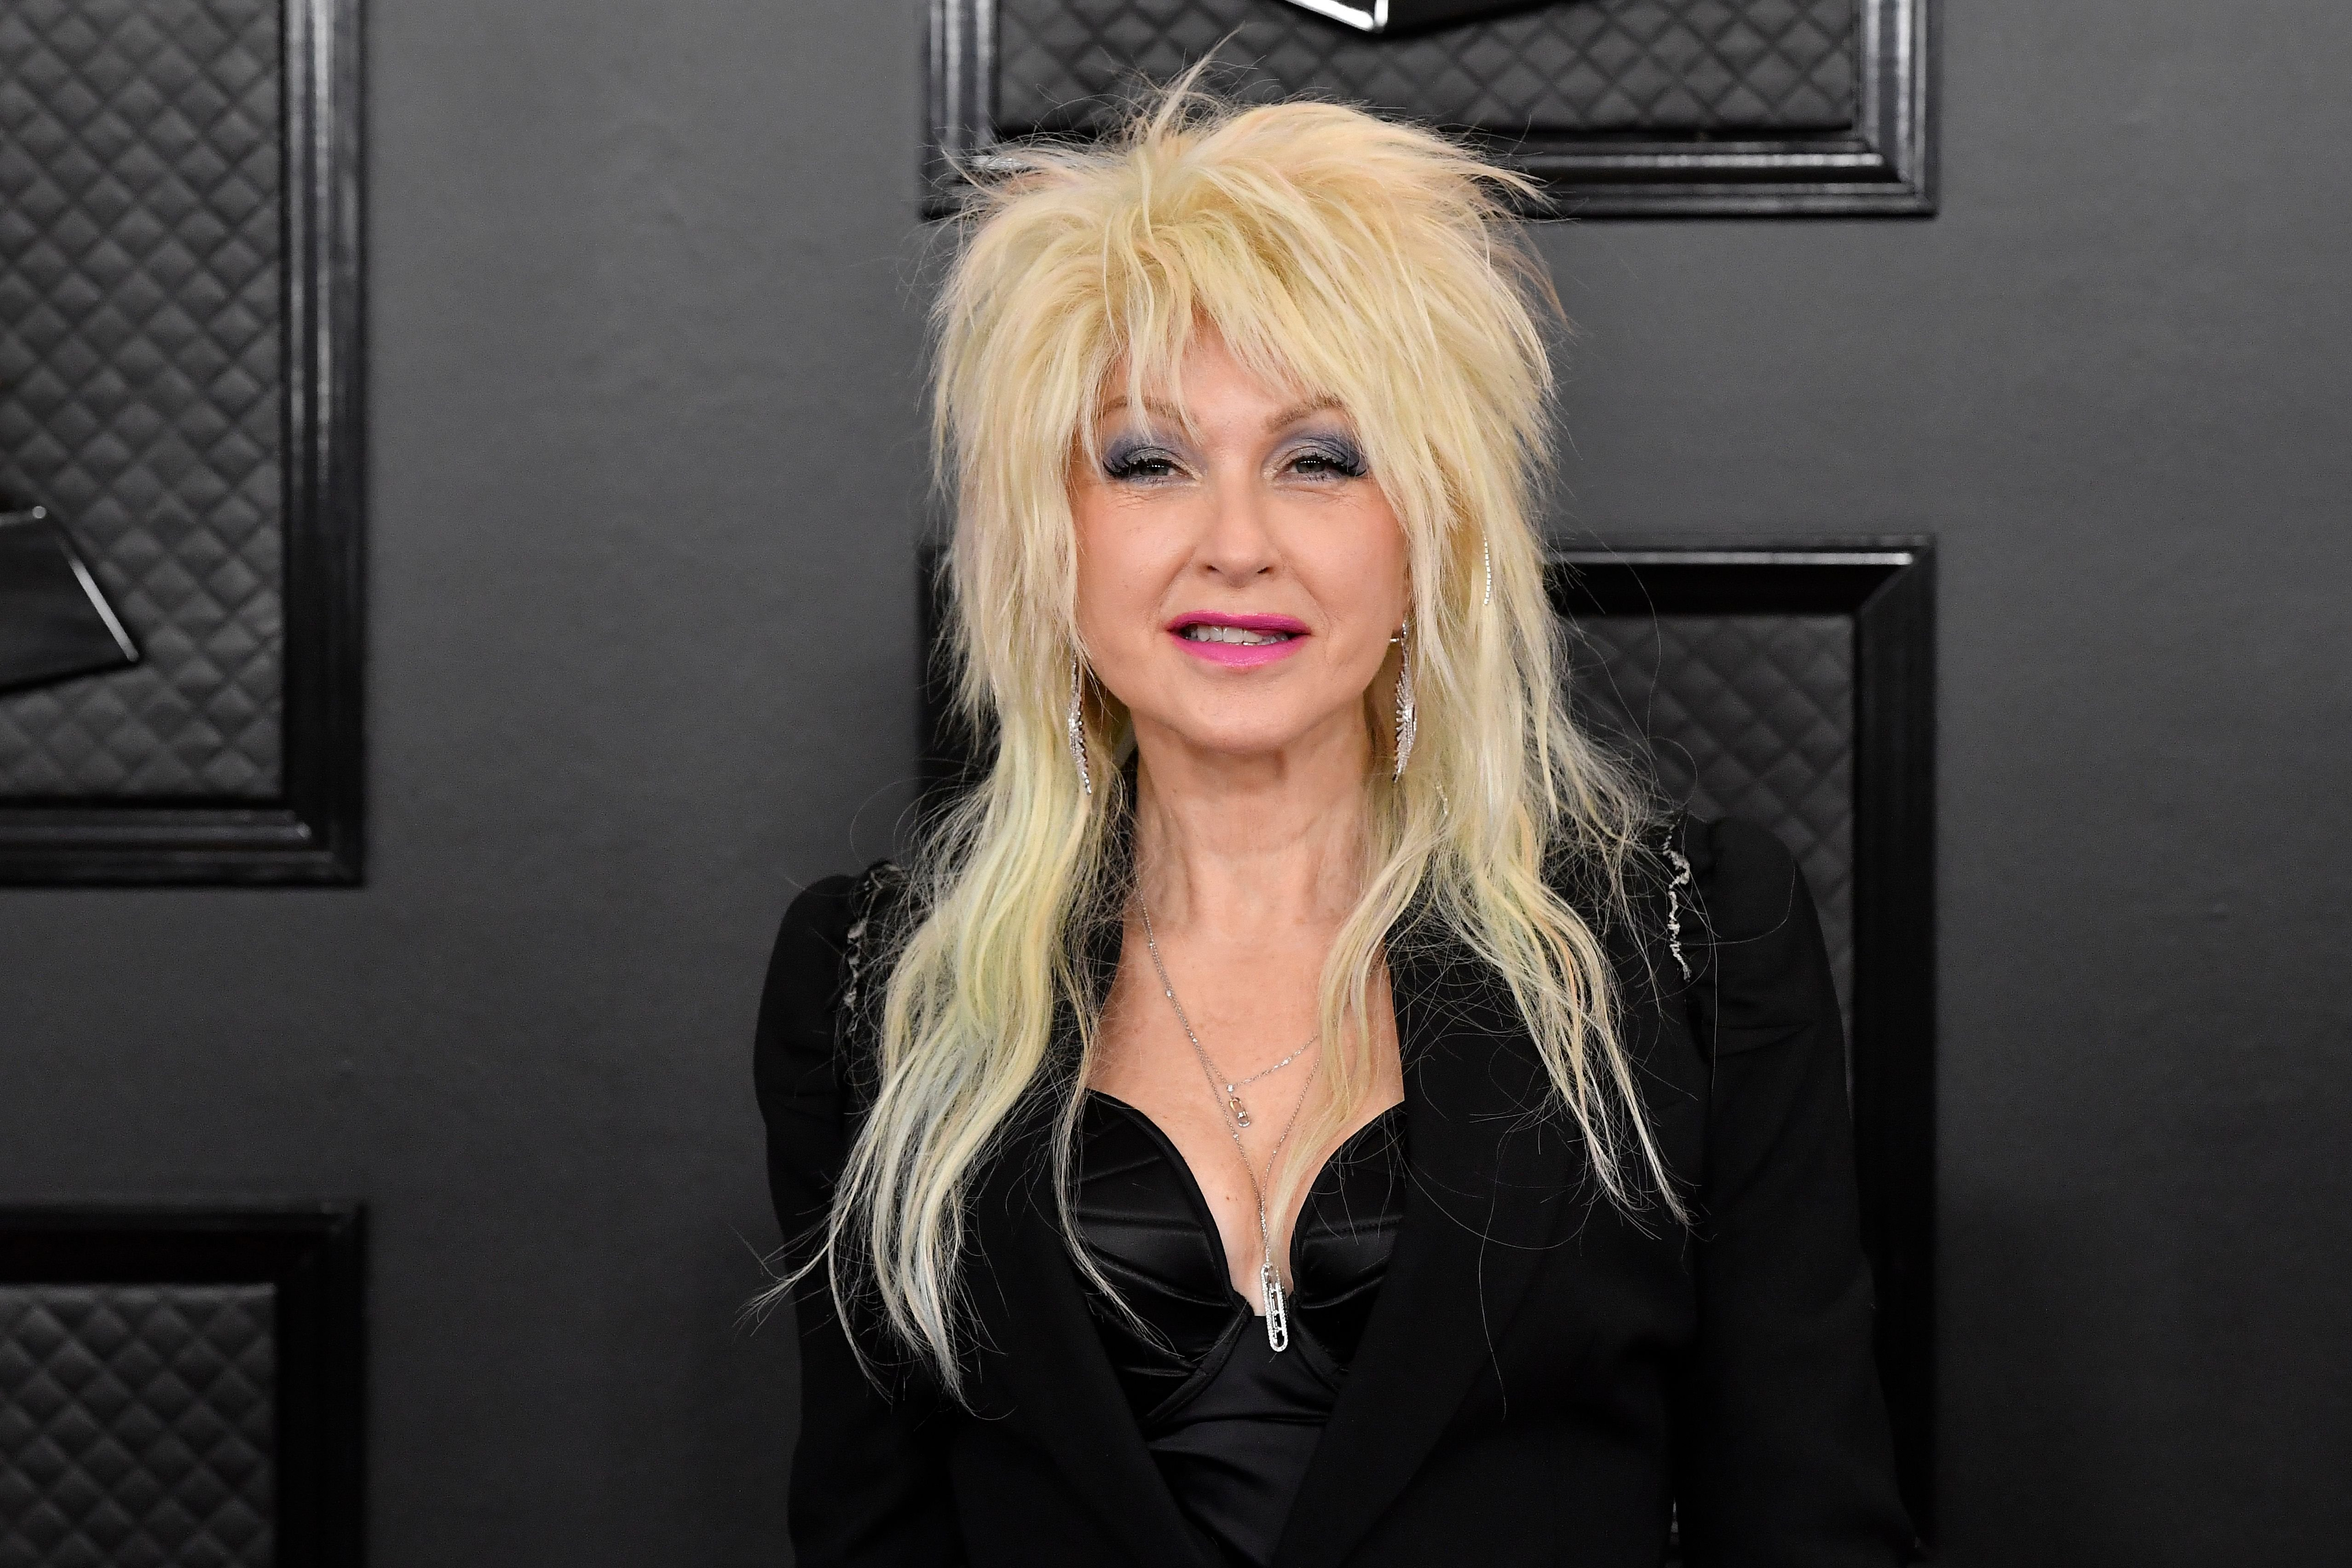 Cyndi Lauper atthe 62nd Annual Grammy Awards at StaplesCenter on January 26, 2020, in Los Angeles, California   Photo:Frazer Harrison/Getty Images